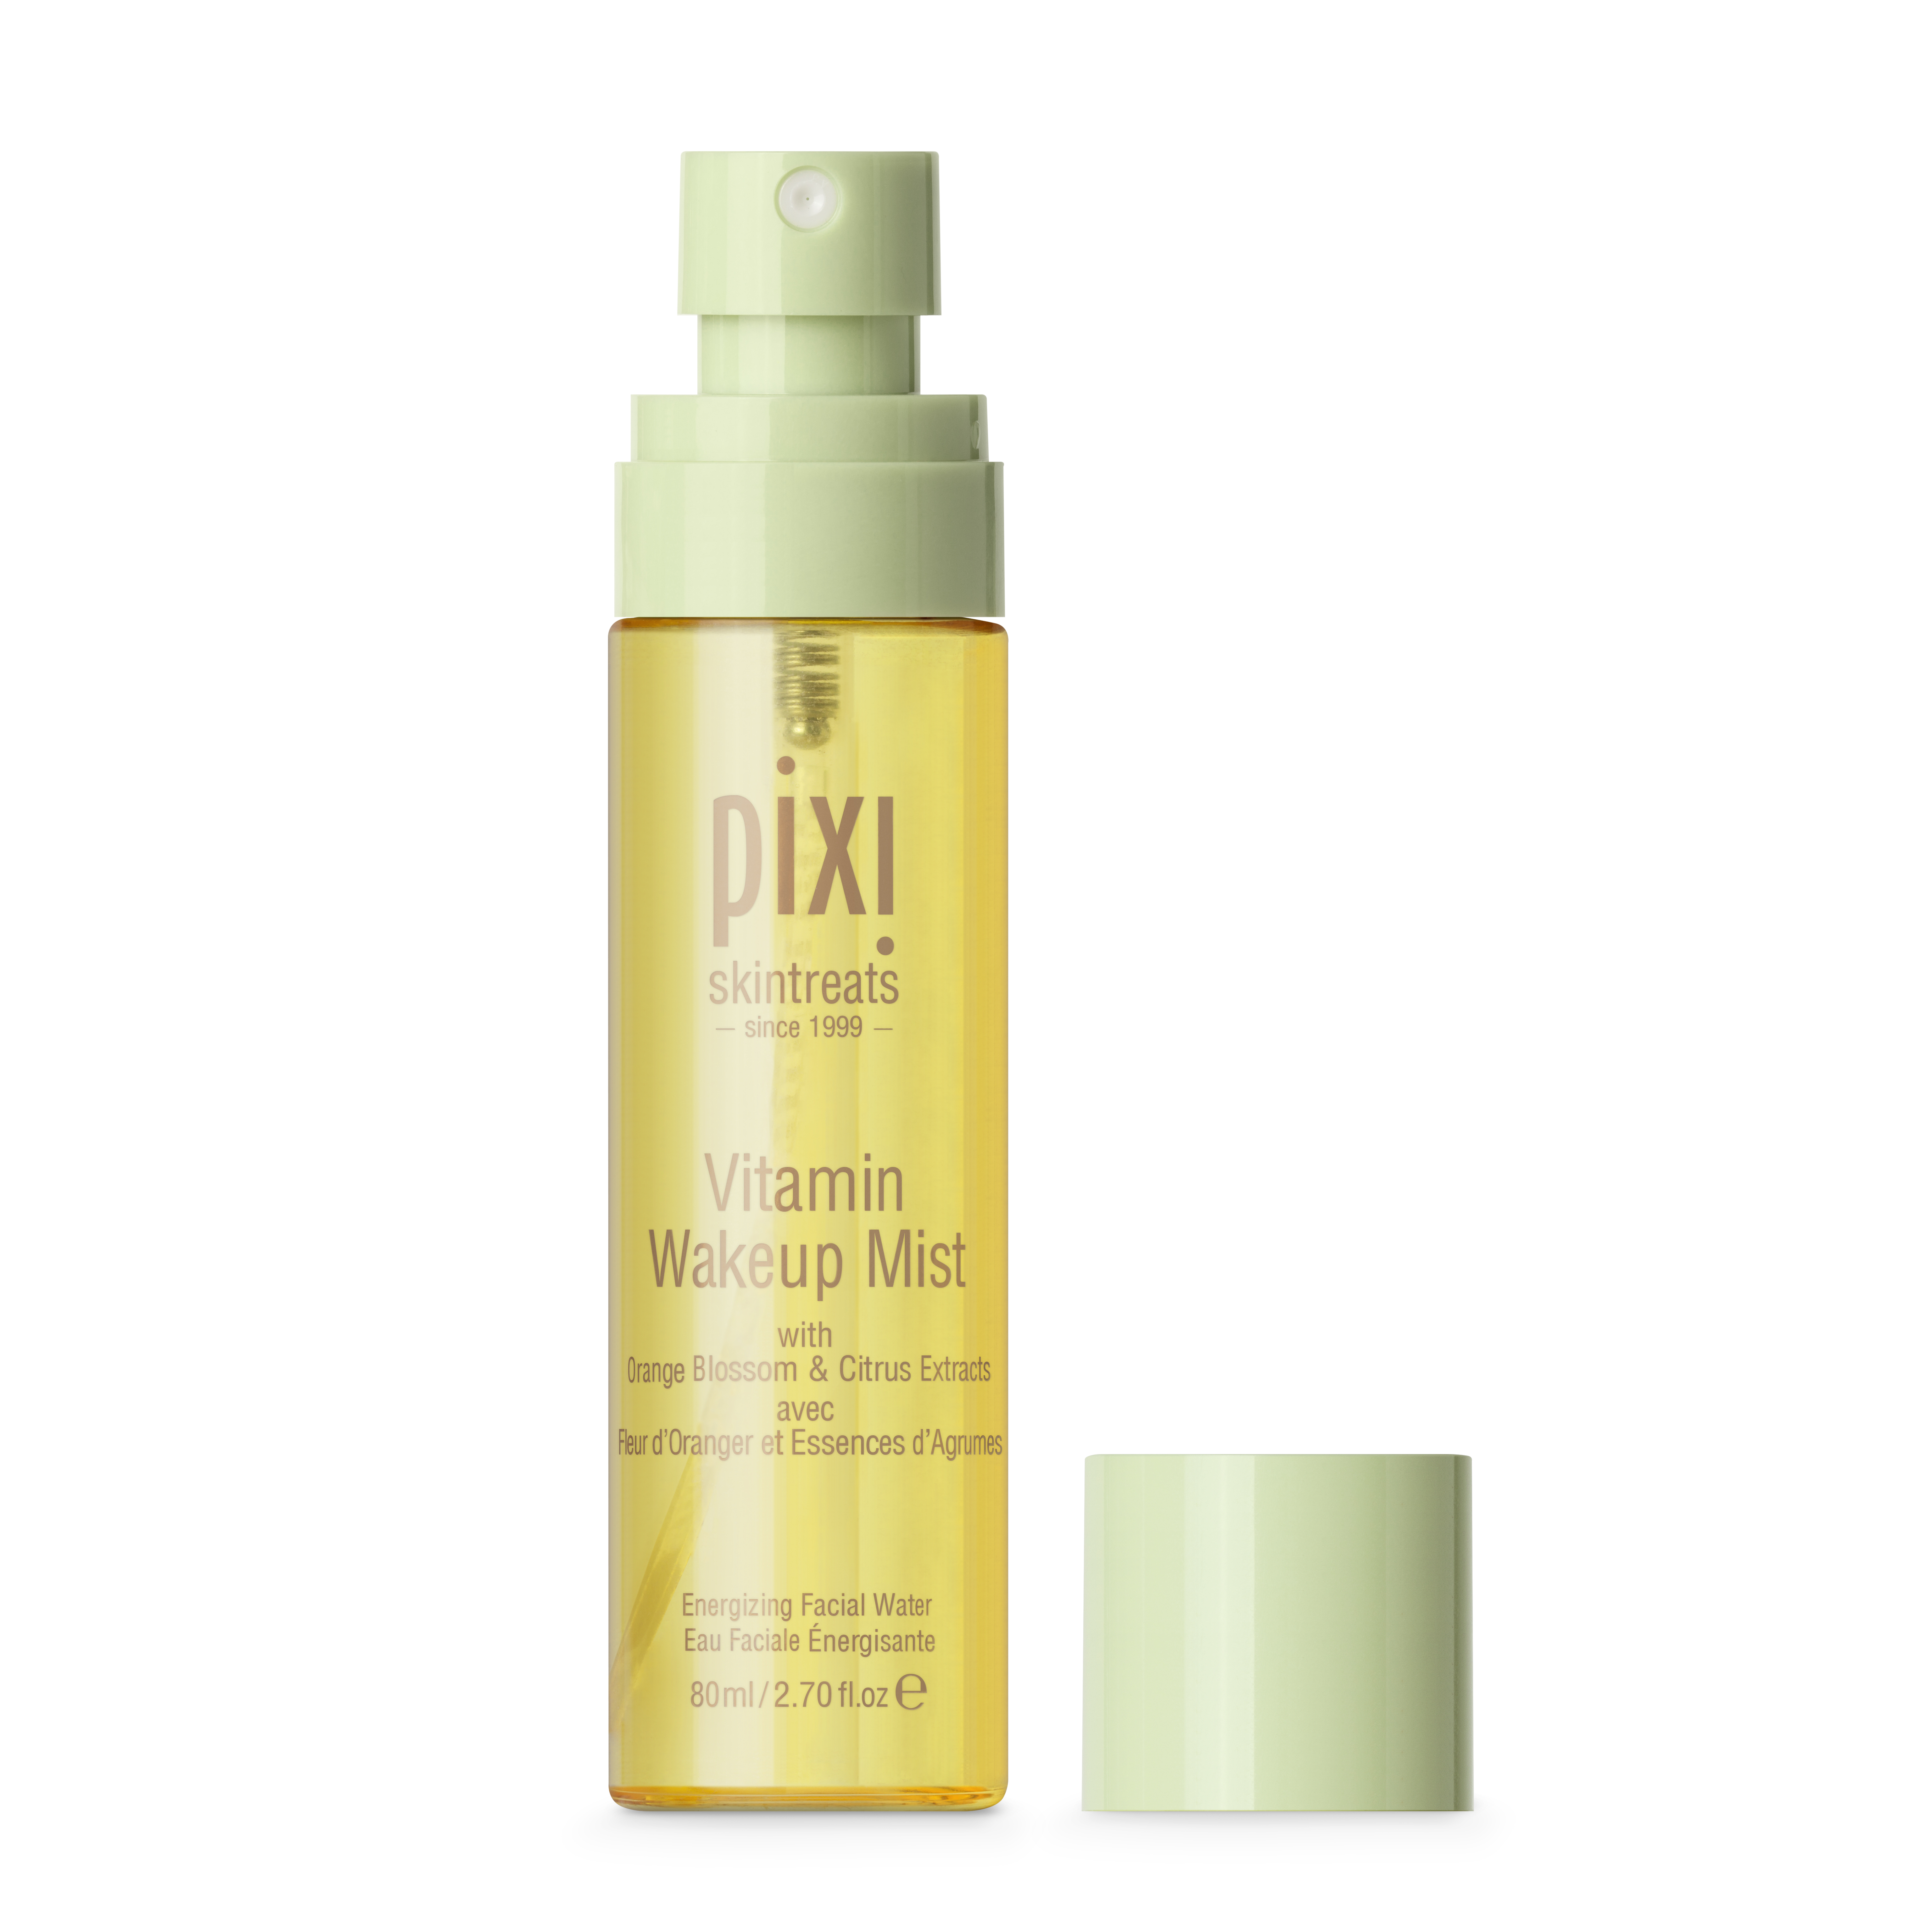 Vitamin Wakeup Mist Facial Toner 80 ml